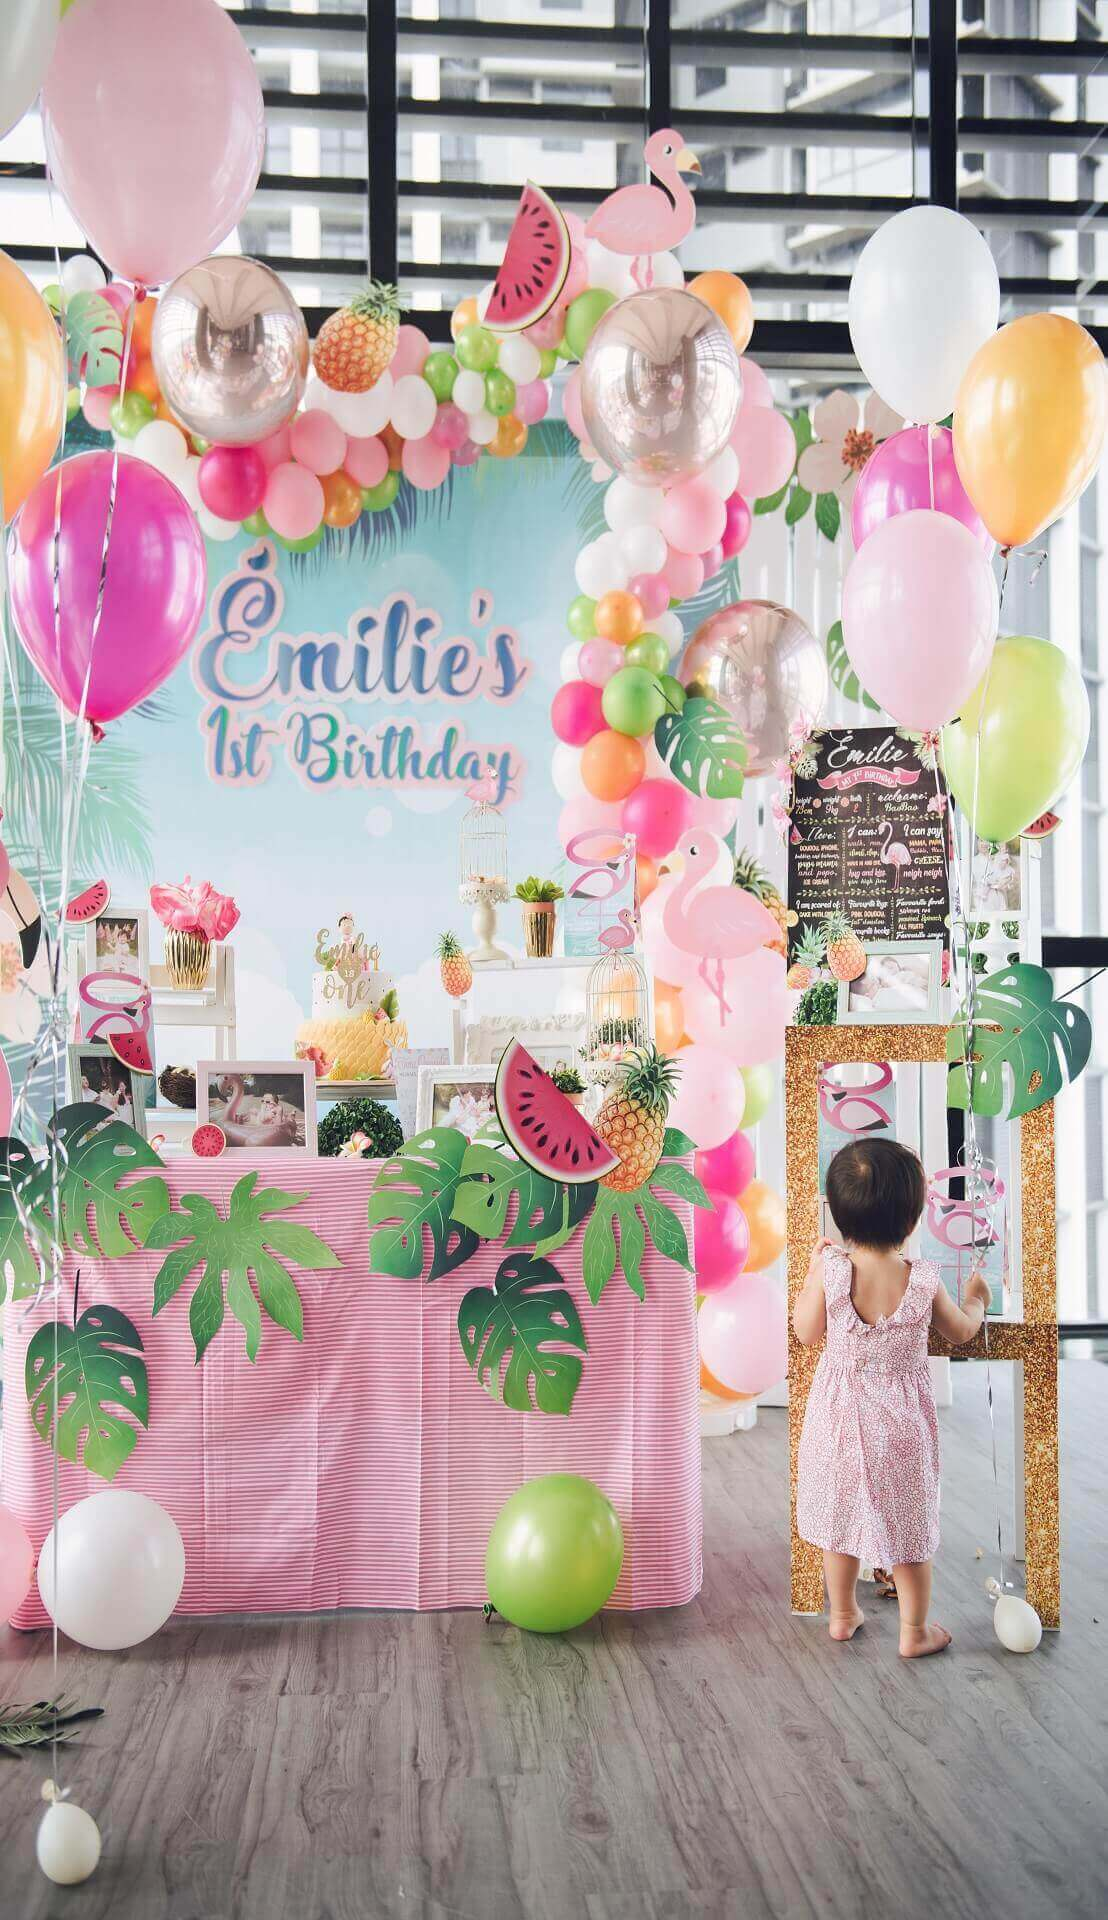 Sugar & Spice Events - Birthday party decoration display, pink is the colour